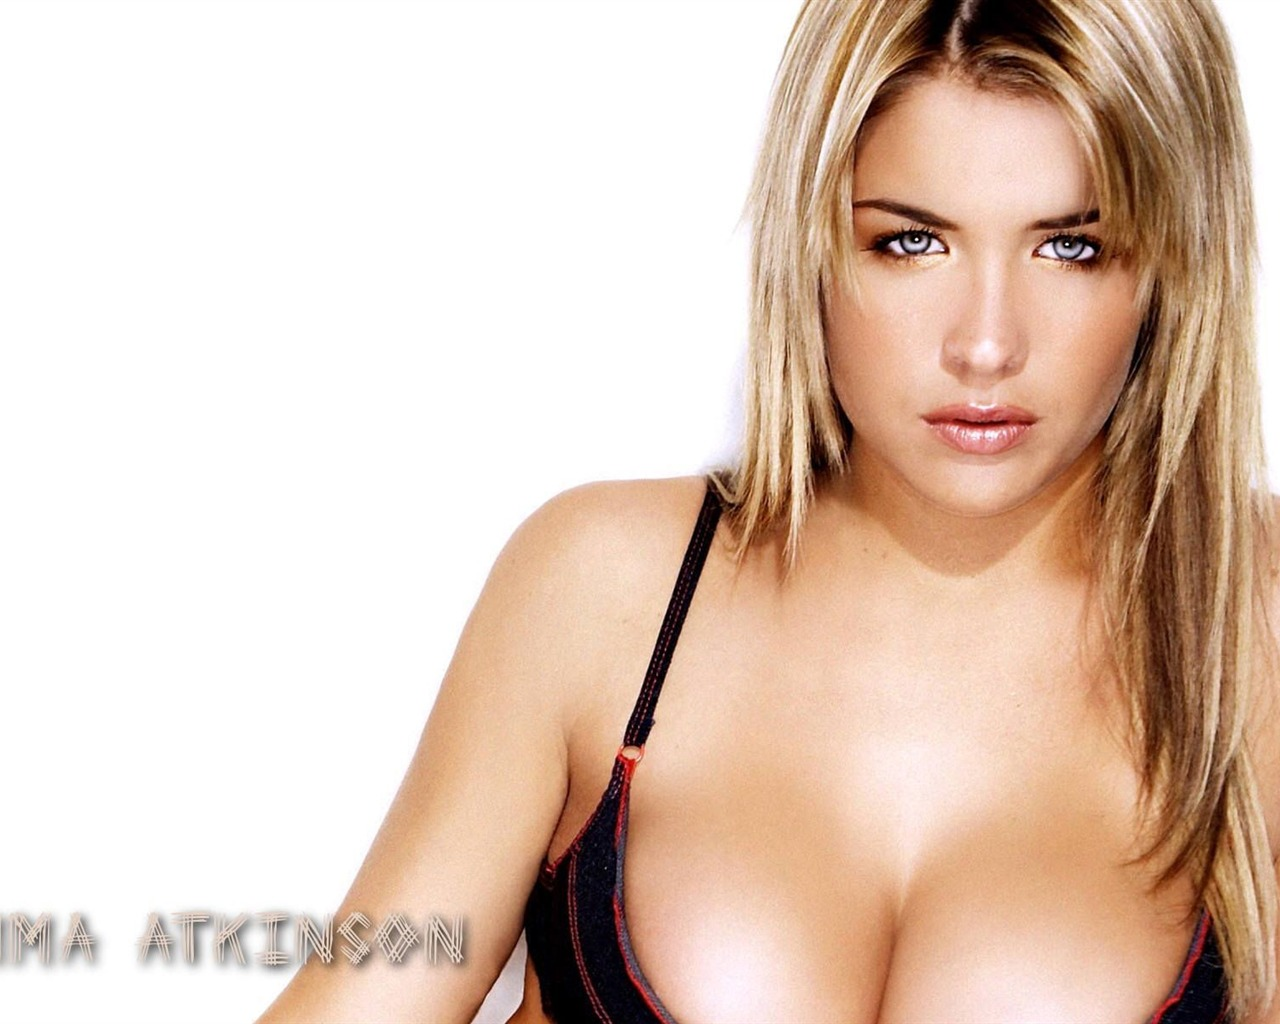 Gemma Atkinson #024 - 1280x1024 Wallpapers Pictures Photos Images